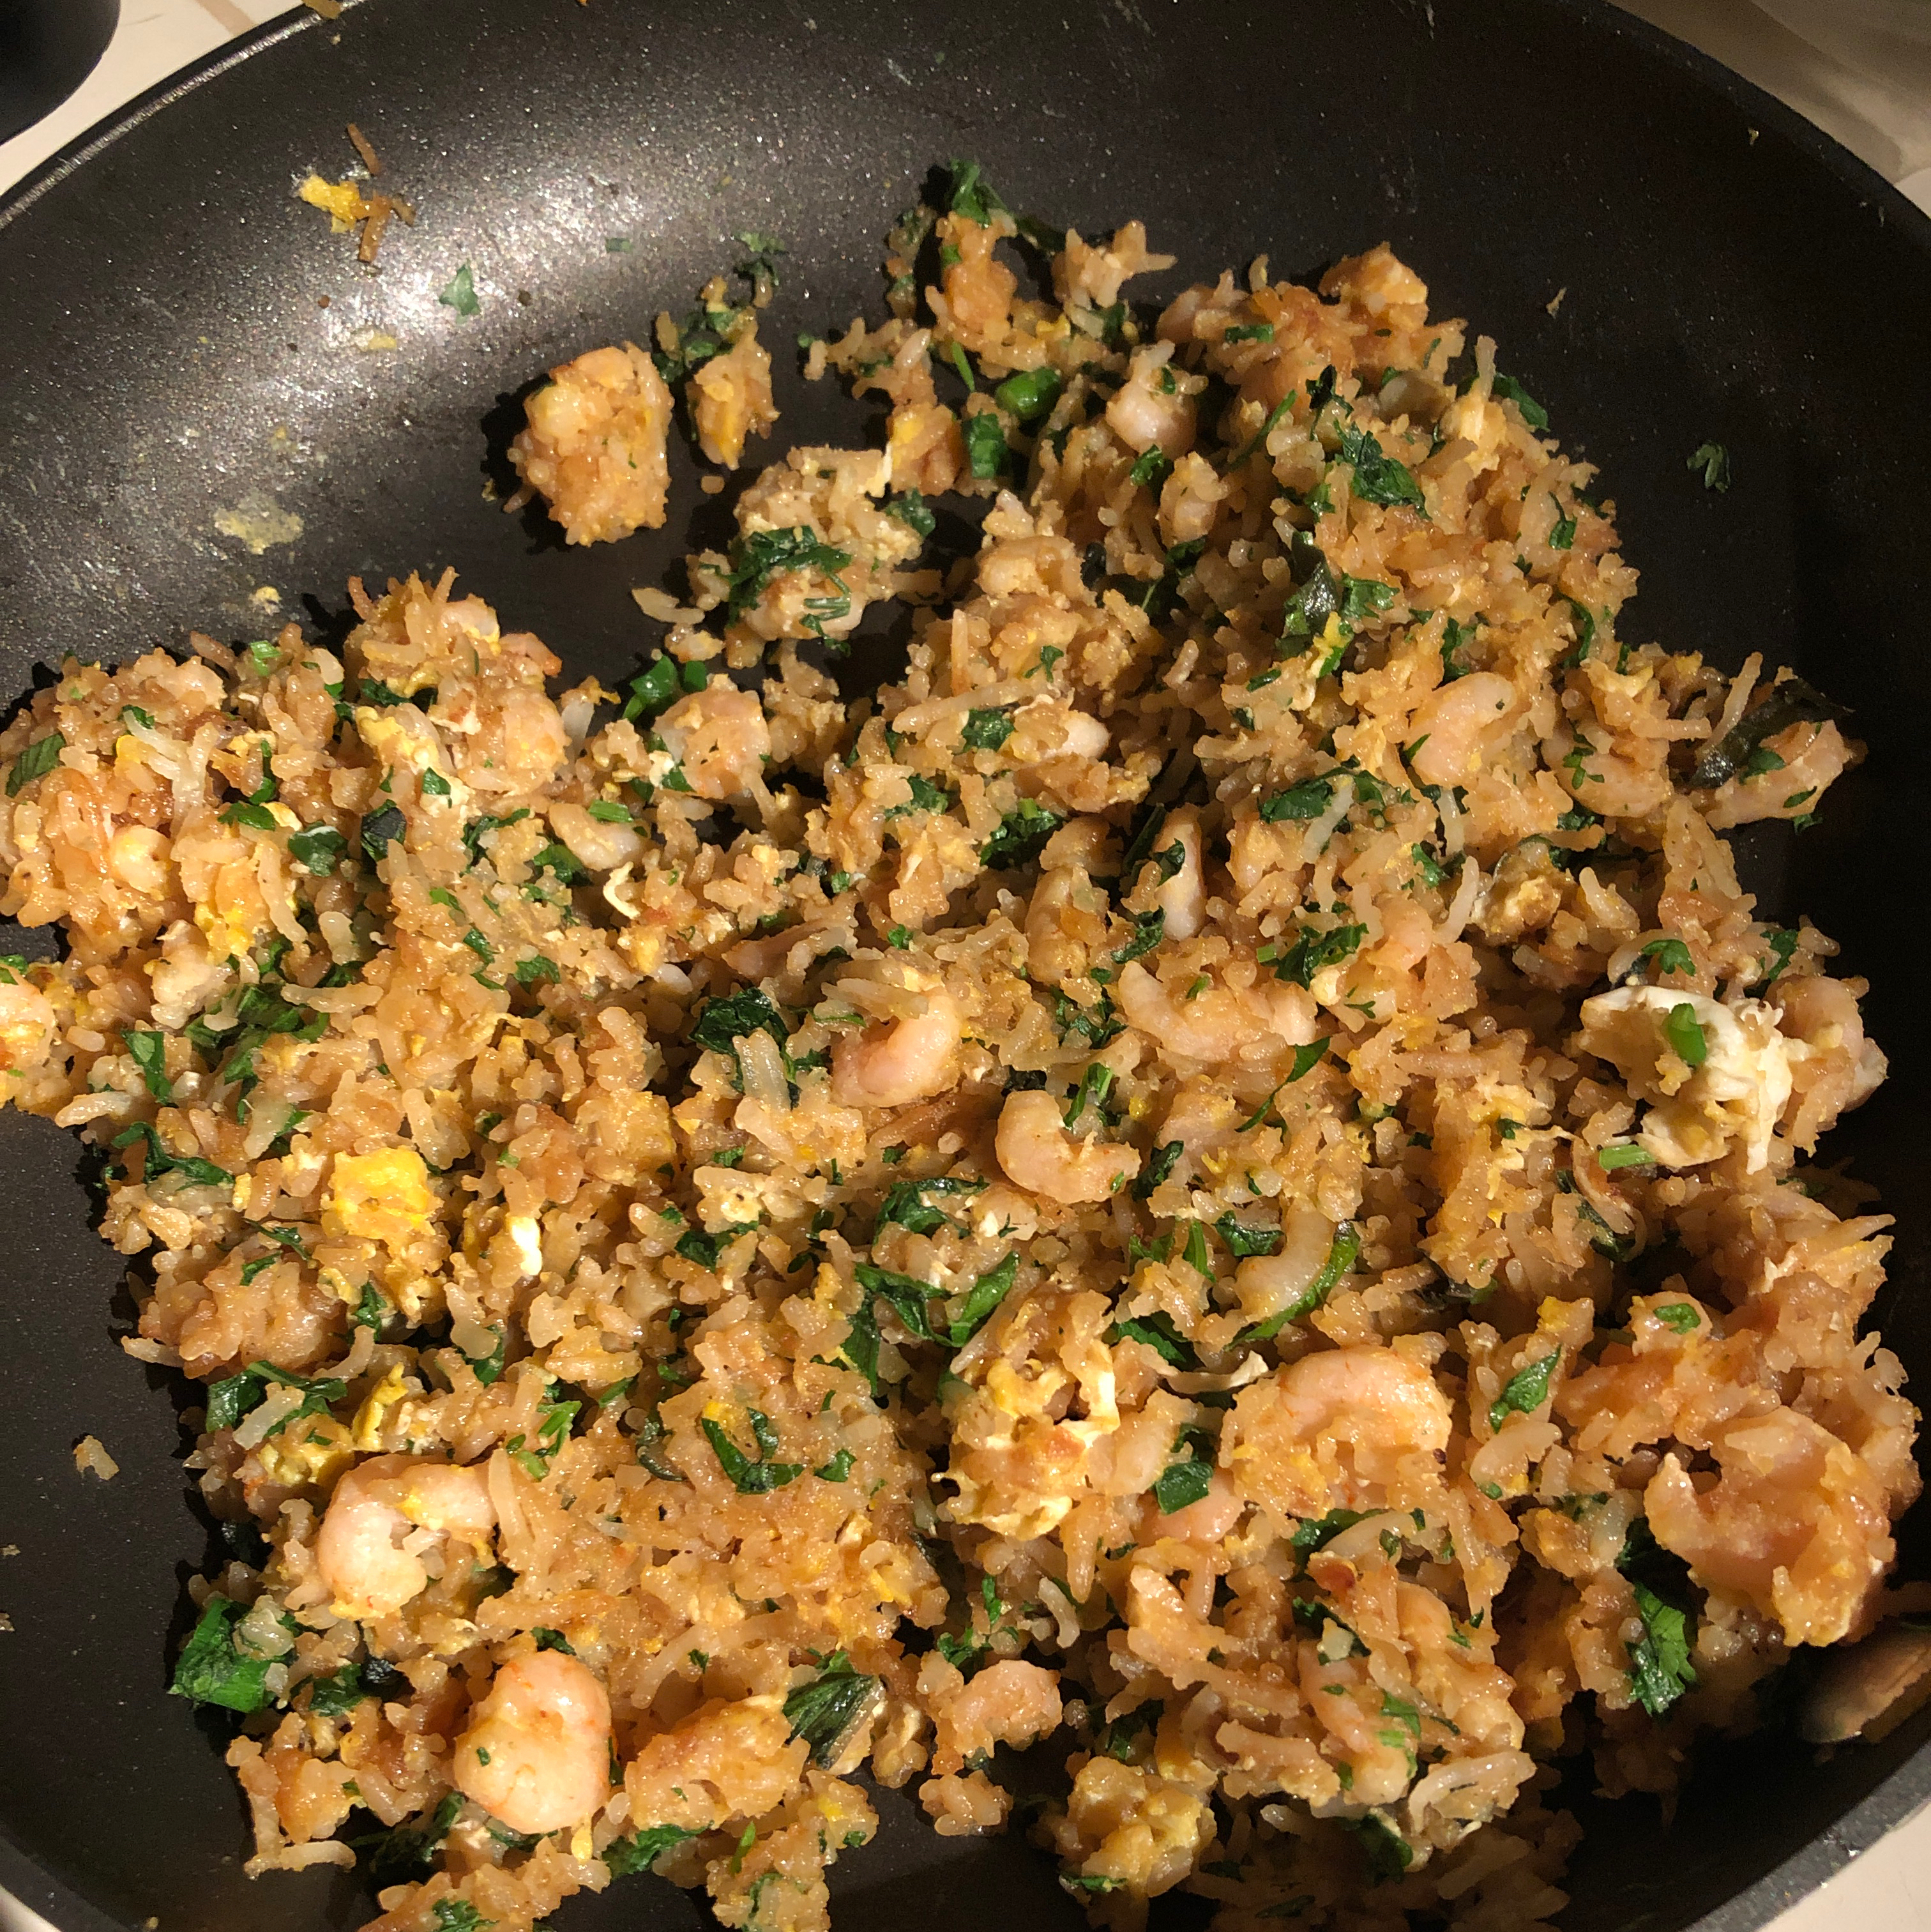 Fried Rice with Cilantro Mturner31